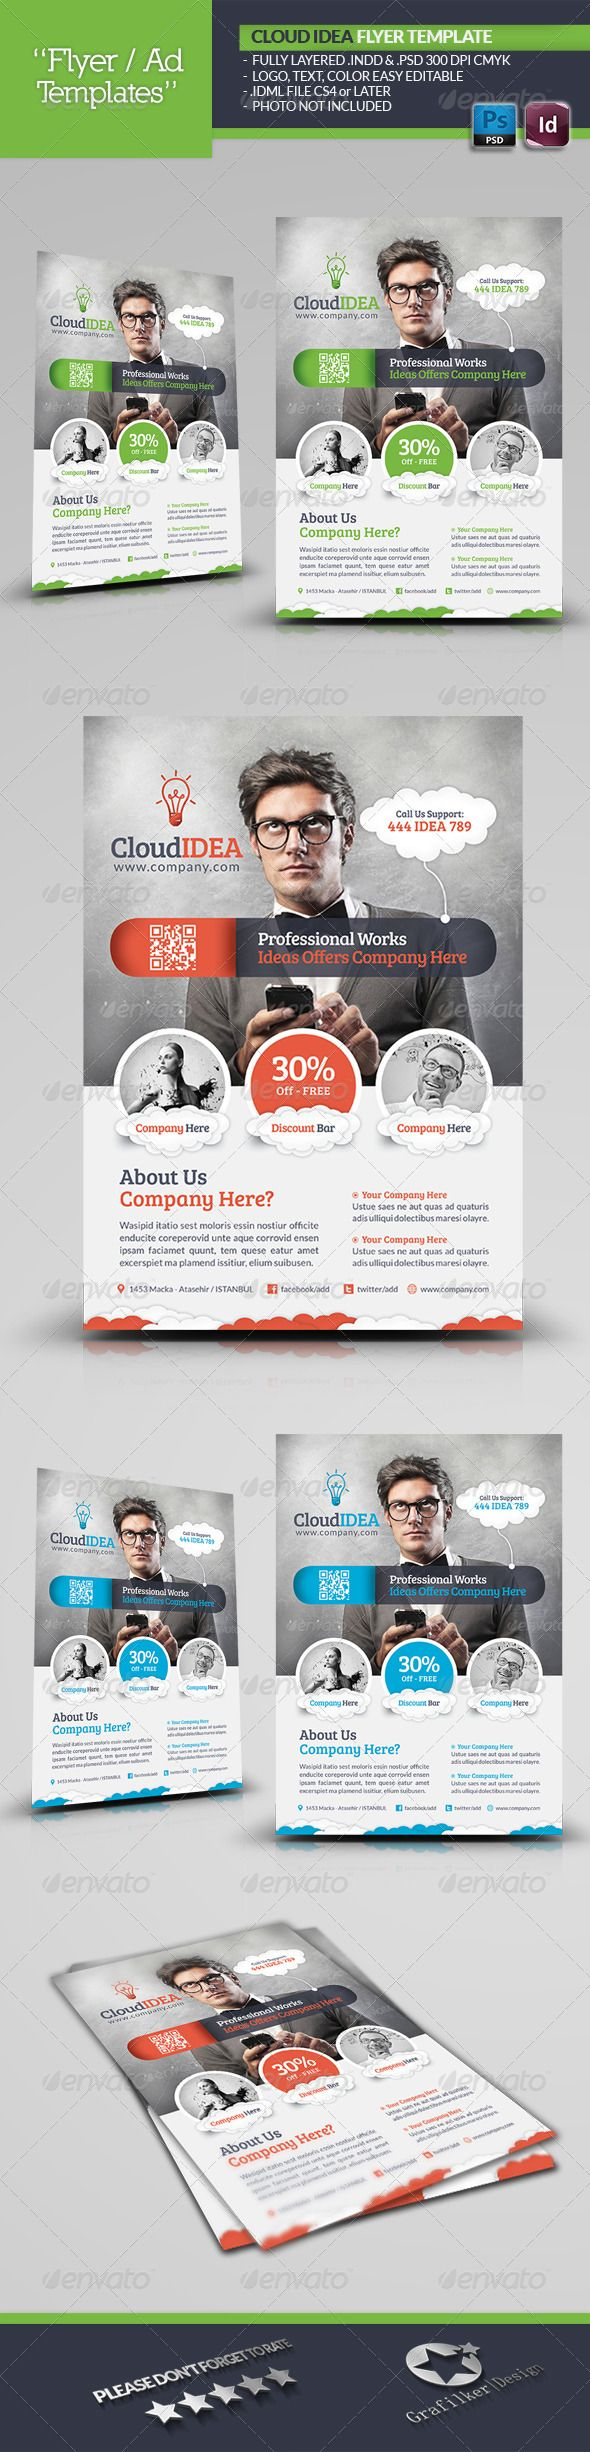 Open Source Invoice Software  Best Cleaning Service Flyer Images On Pinterest  Cleaning  Company Invoice Template with Download Proforma Invoice Word Cloud Idea Flyer Template Professional Invoice Format Pdf